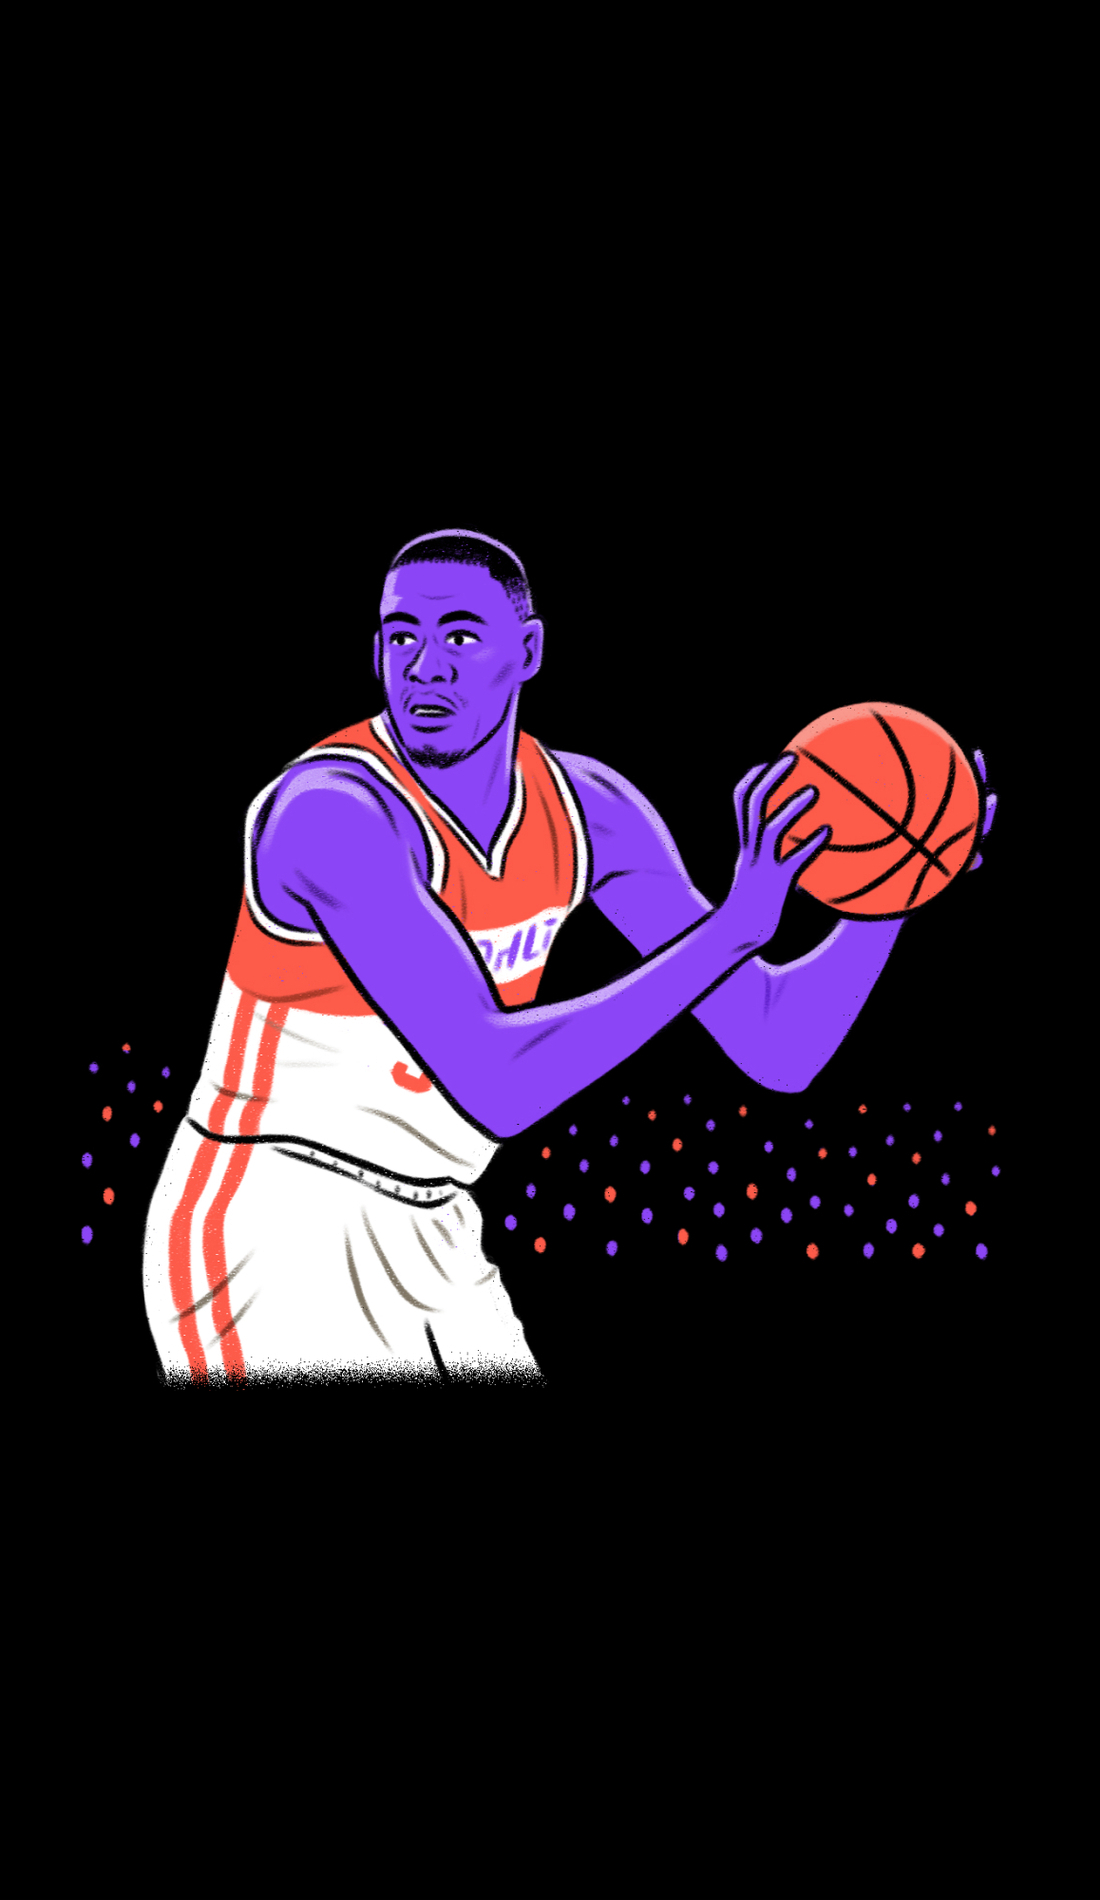 A Mississippi State Bulldogs Basketball live event